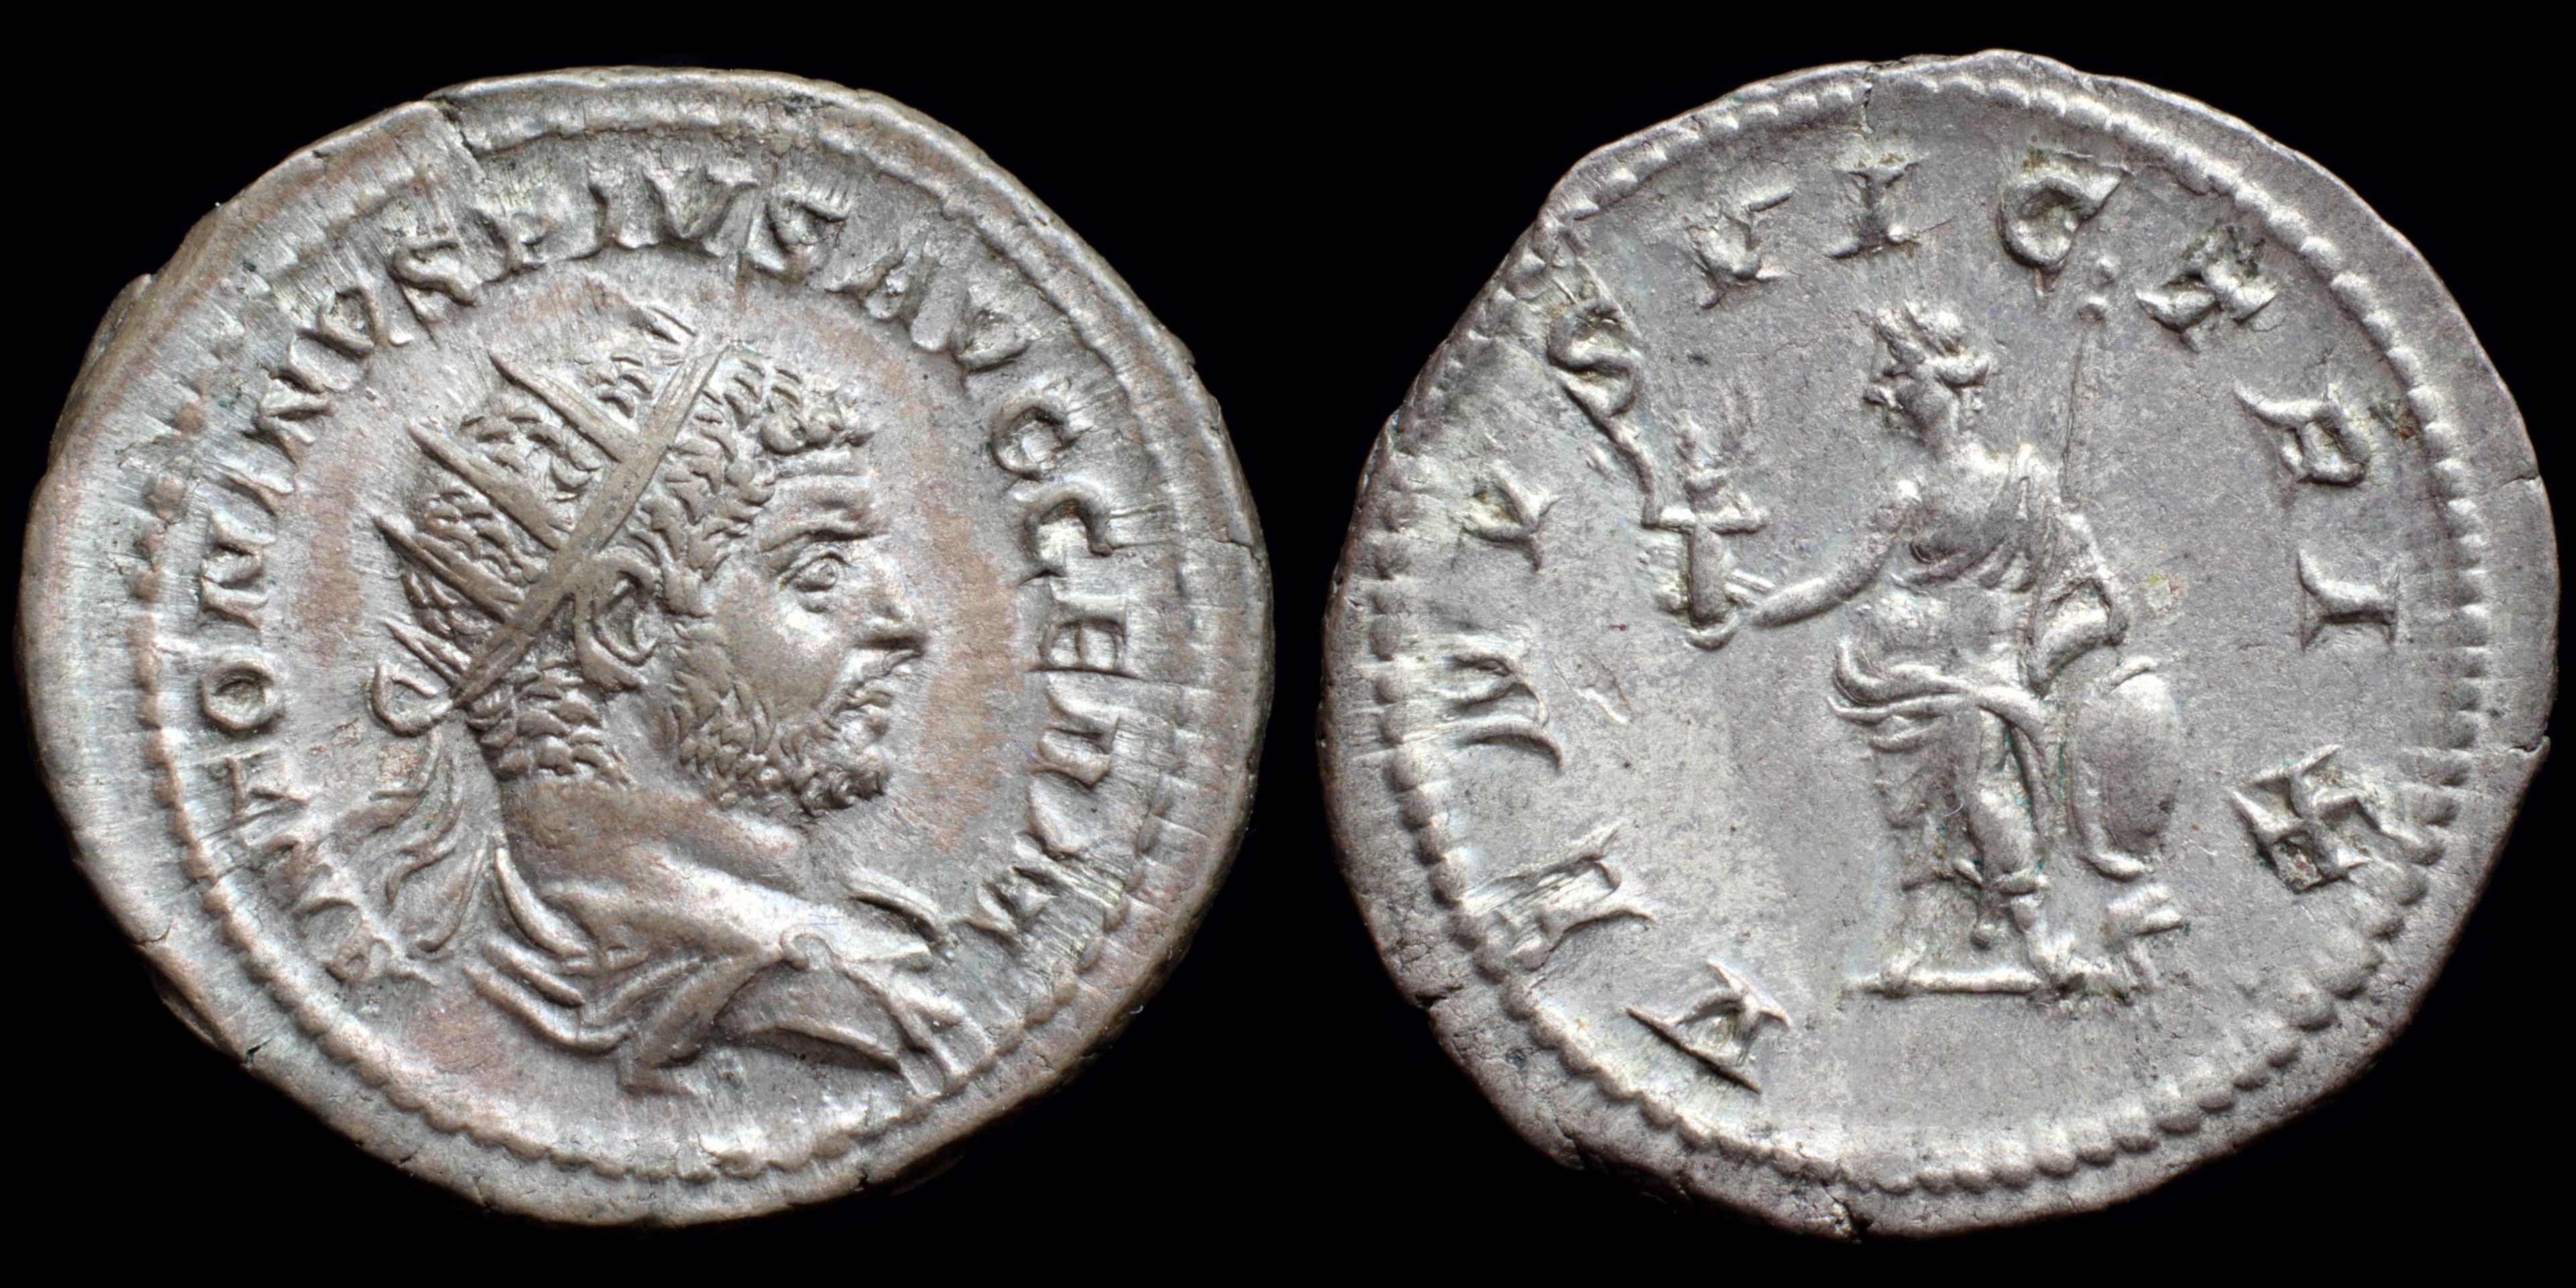 /Files/Images/Coinsite/CoinDB/316_Caracalla_antoninianus.jpg